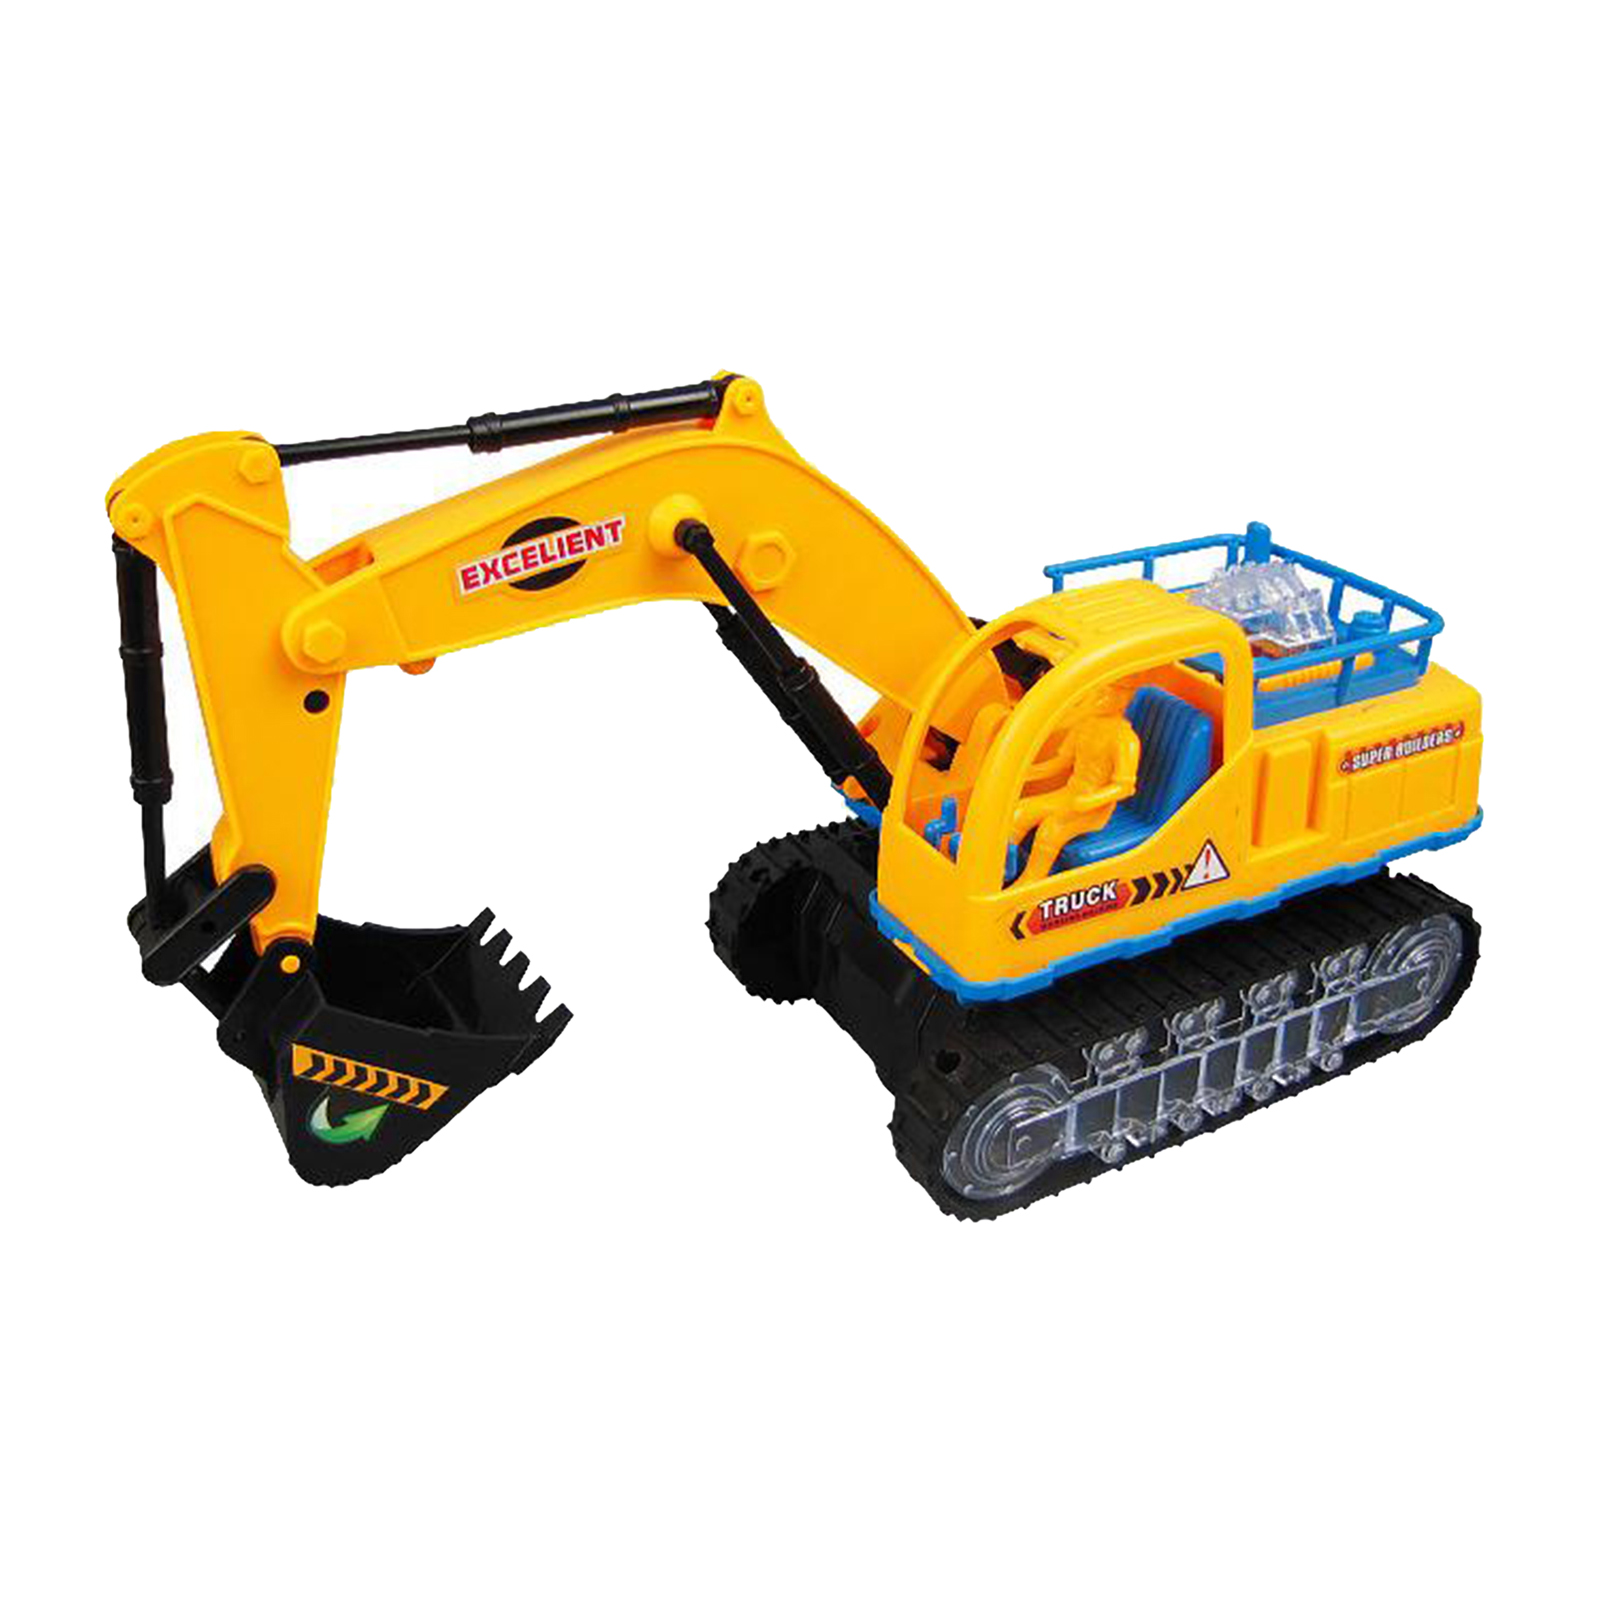 Children Simulation Musical Electric Construction Vehicle Excavator Digging Engineering Flash Car Toy with LED Light & Music